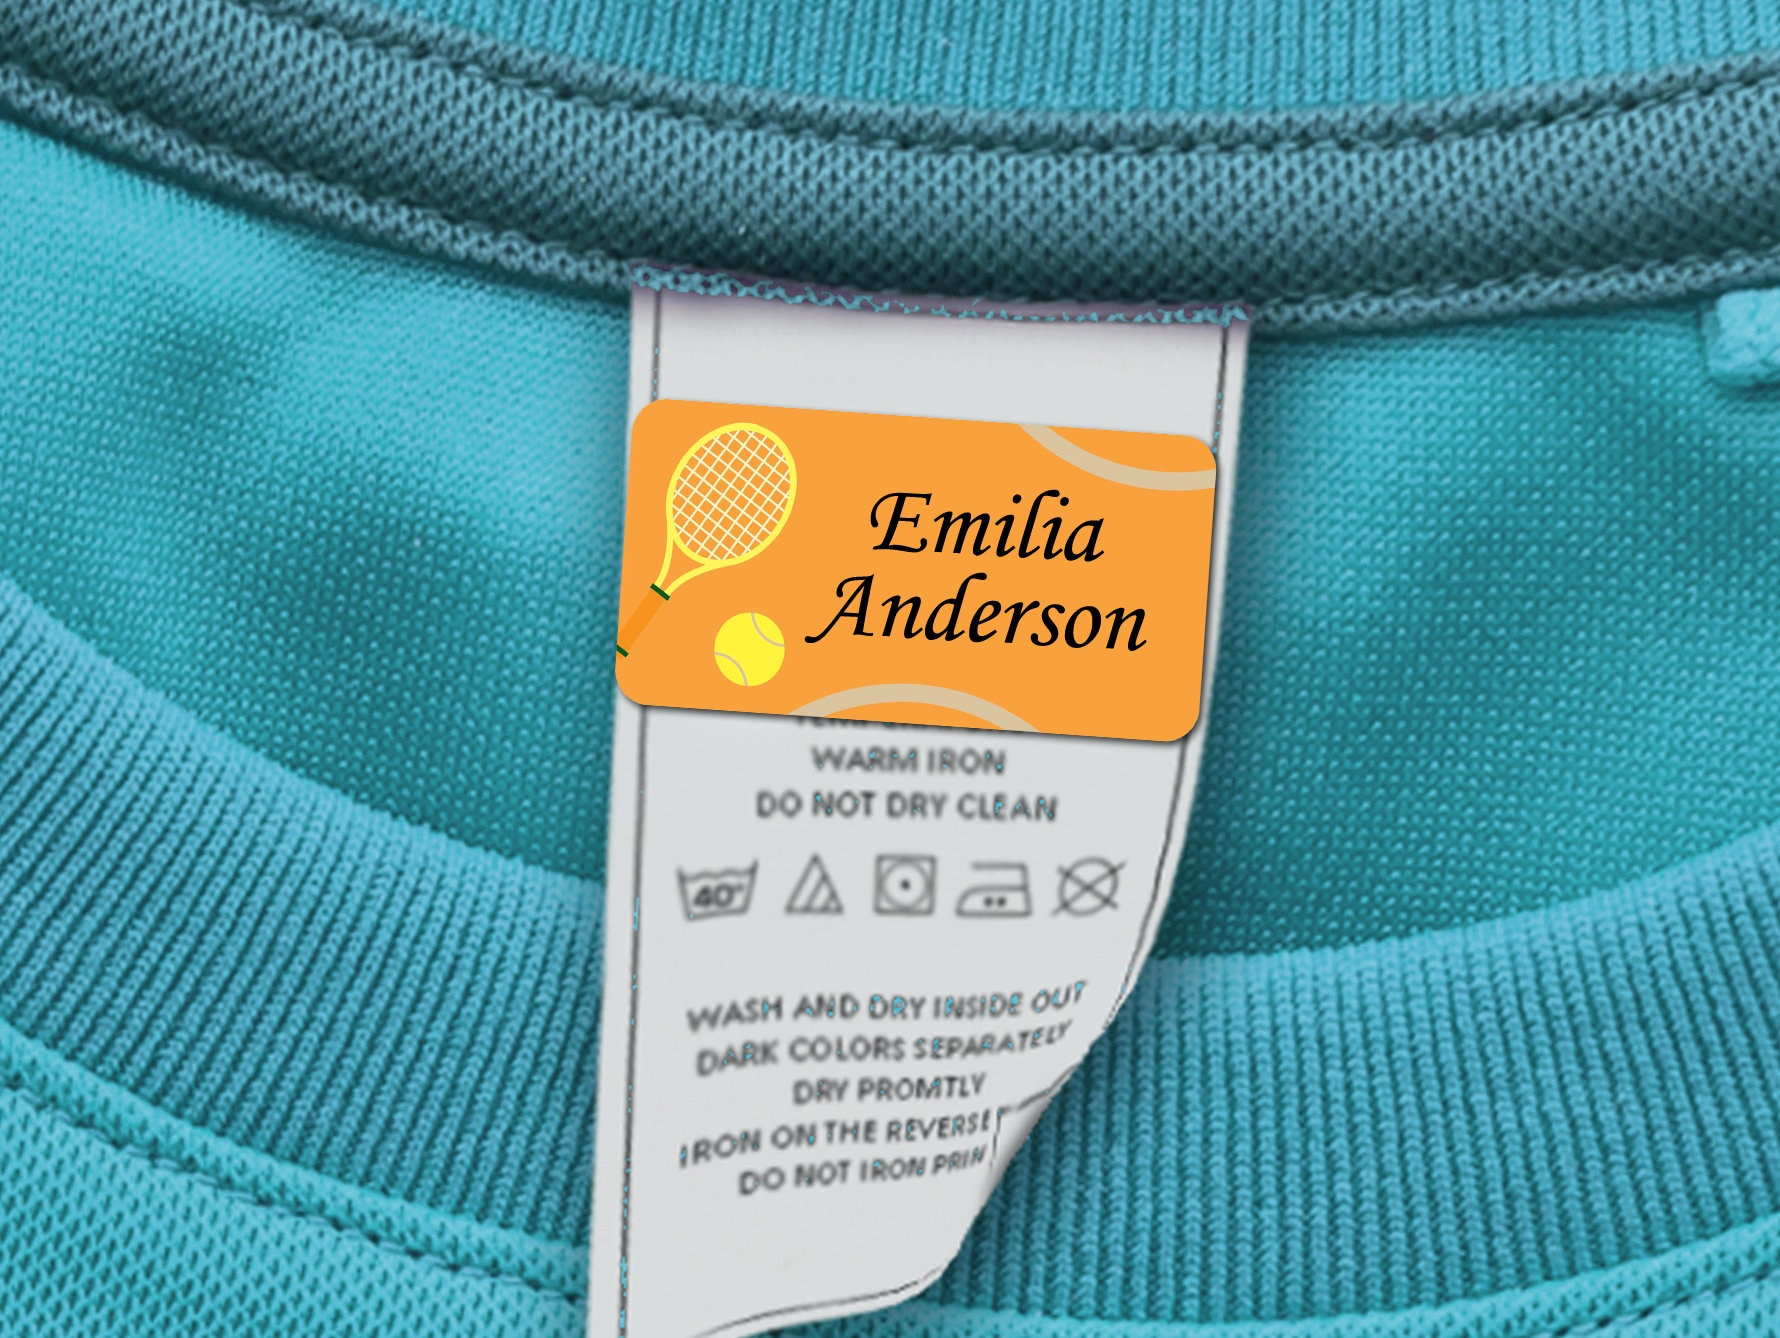 200pcs Iron on Sew on Waterproof Name Clothing School Label Tags Tapes Patch